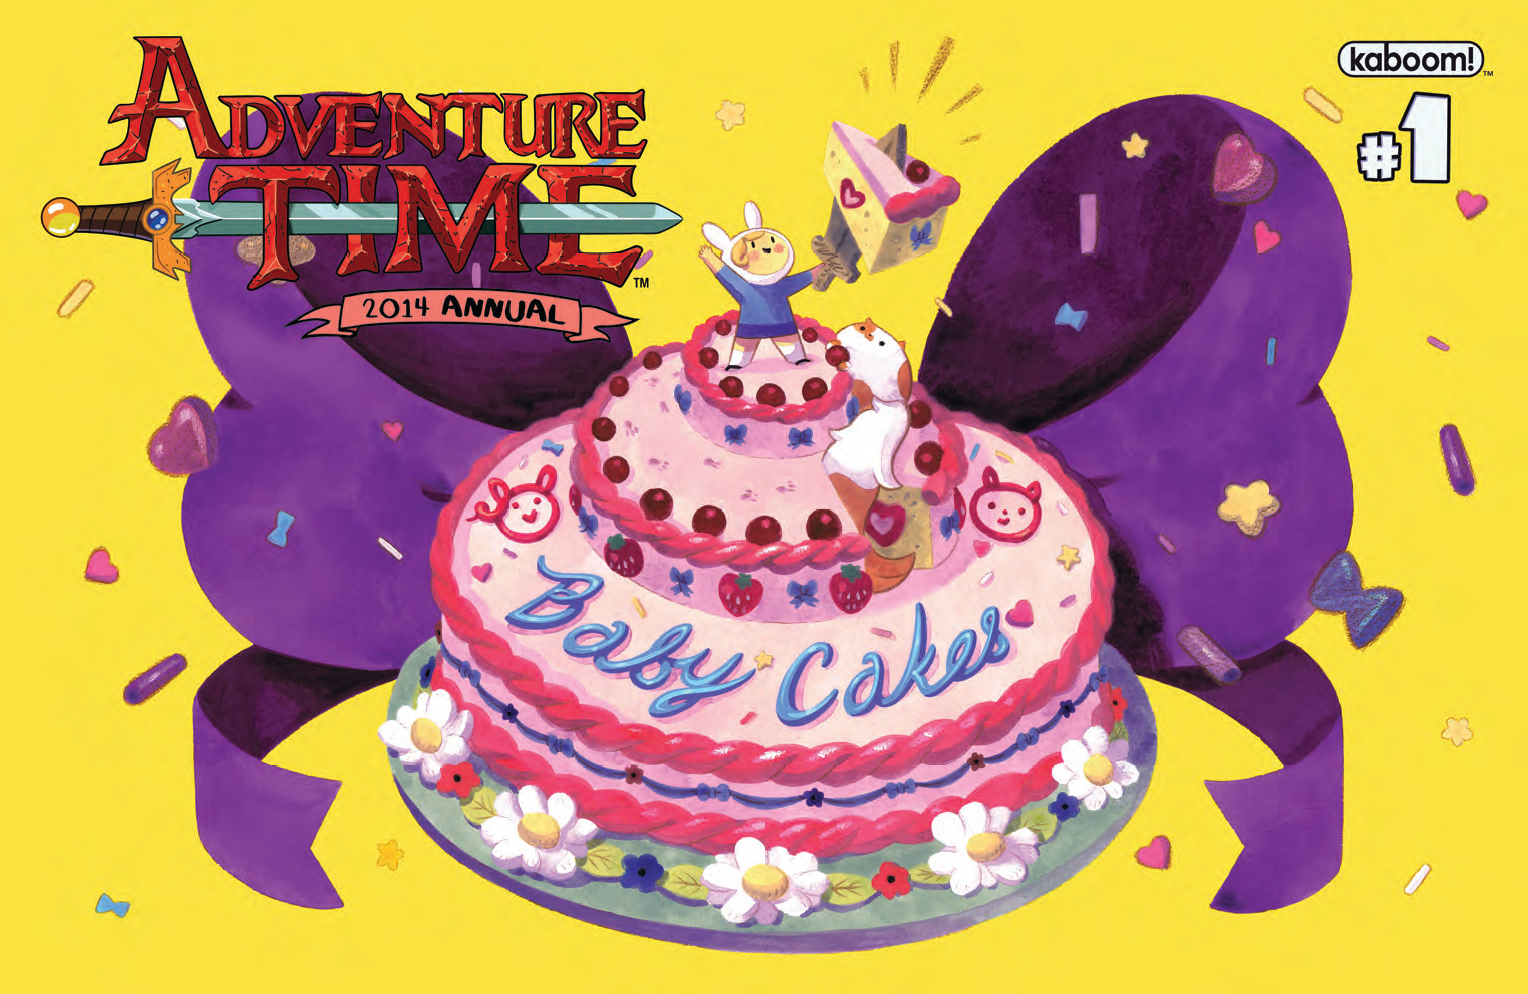 Adventure Time Annual 2014 Adventure Time Wiki Fandom Powered By